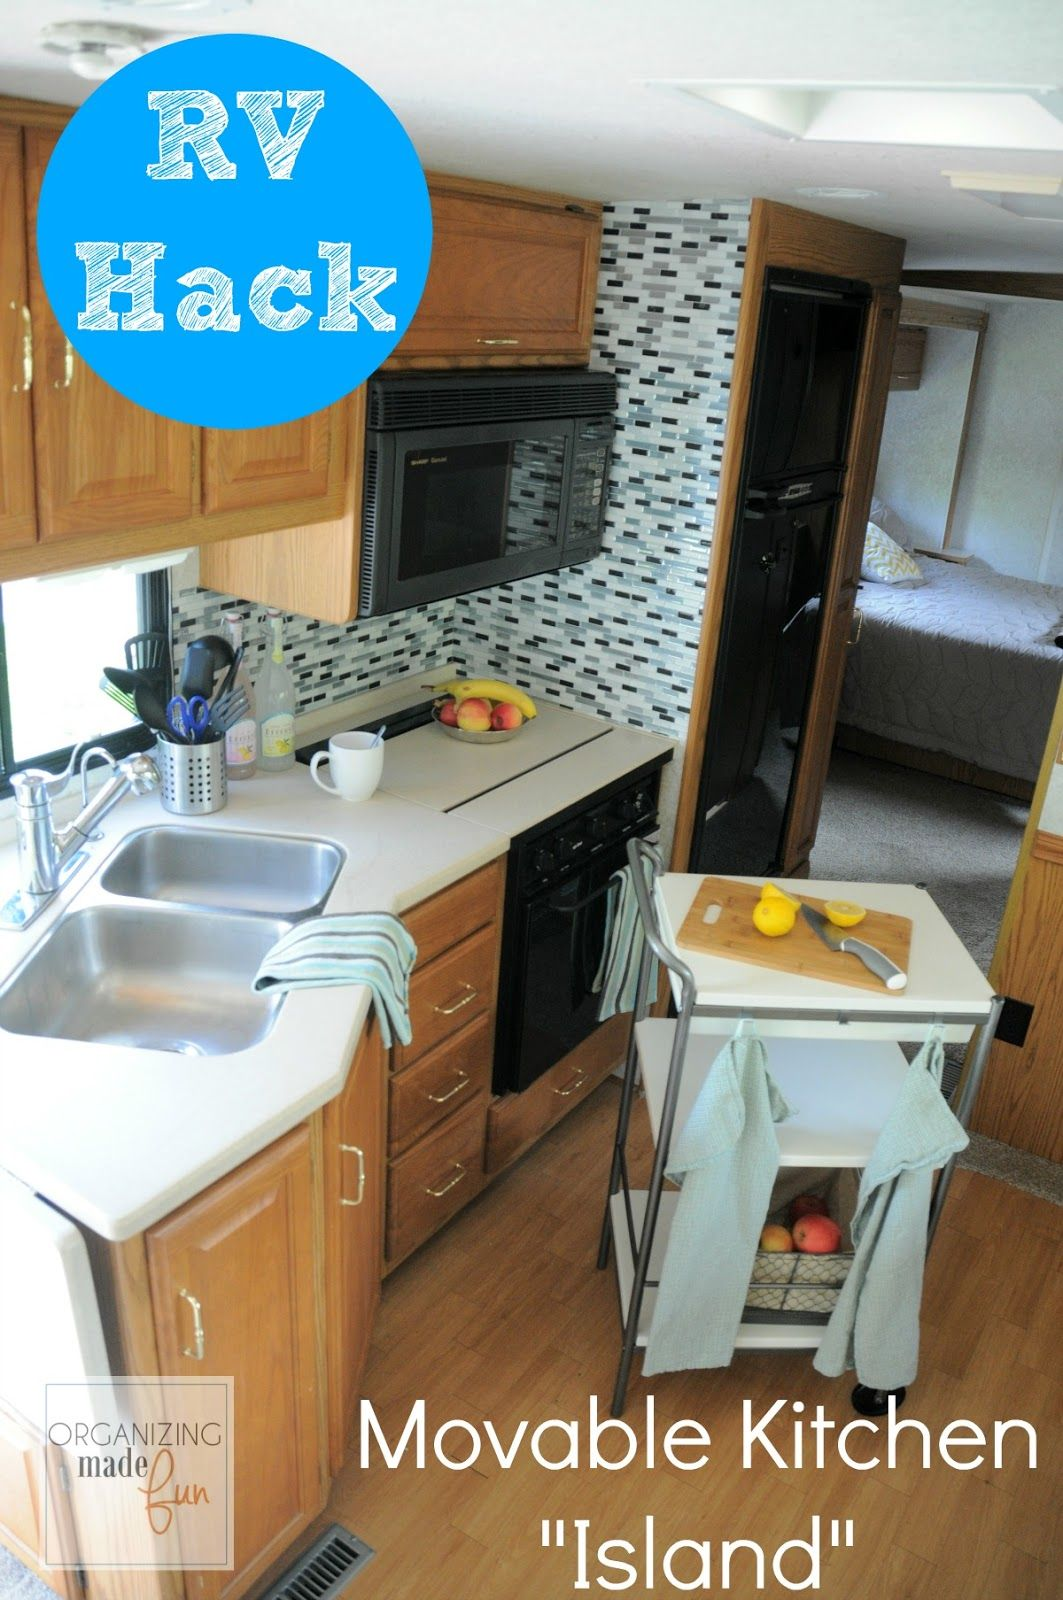 RV Hack -for more counter space get a movable kitchen island OrganizingMadeFun.com & RV Organizing and Storage Hacks Small Spaces | Pinterest | Storage ...